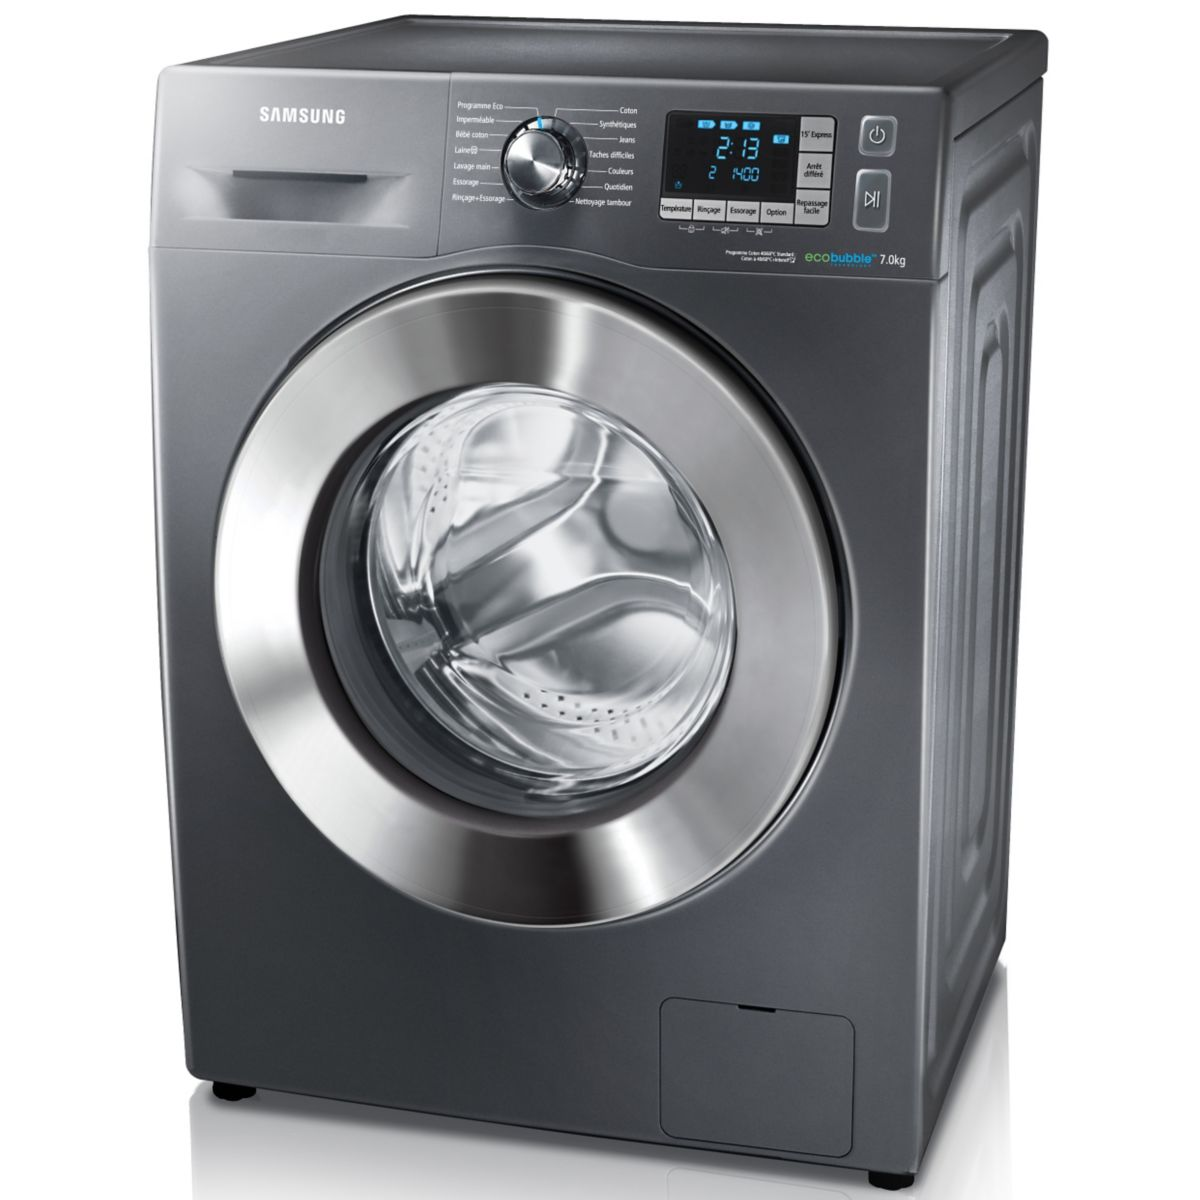 samsung wf70f5e5w4 lave linge frontal eco bubble 7 kg. Black Bedroom Furniture Sets. Home Design Ideas